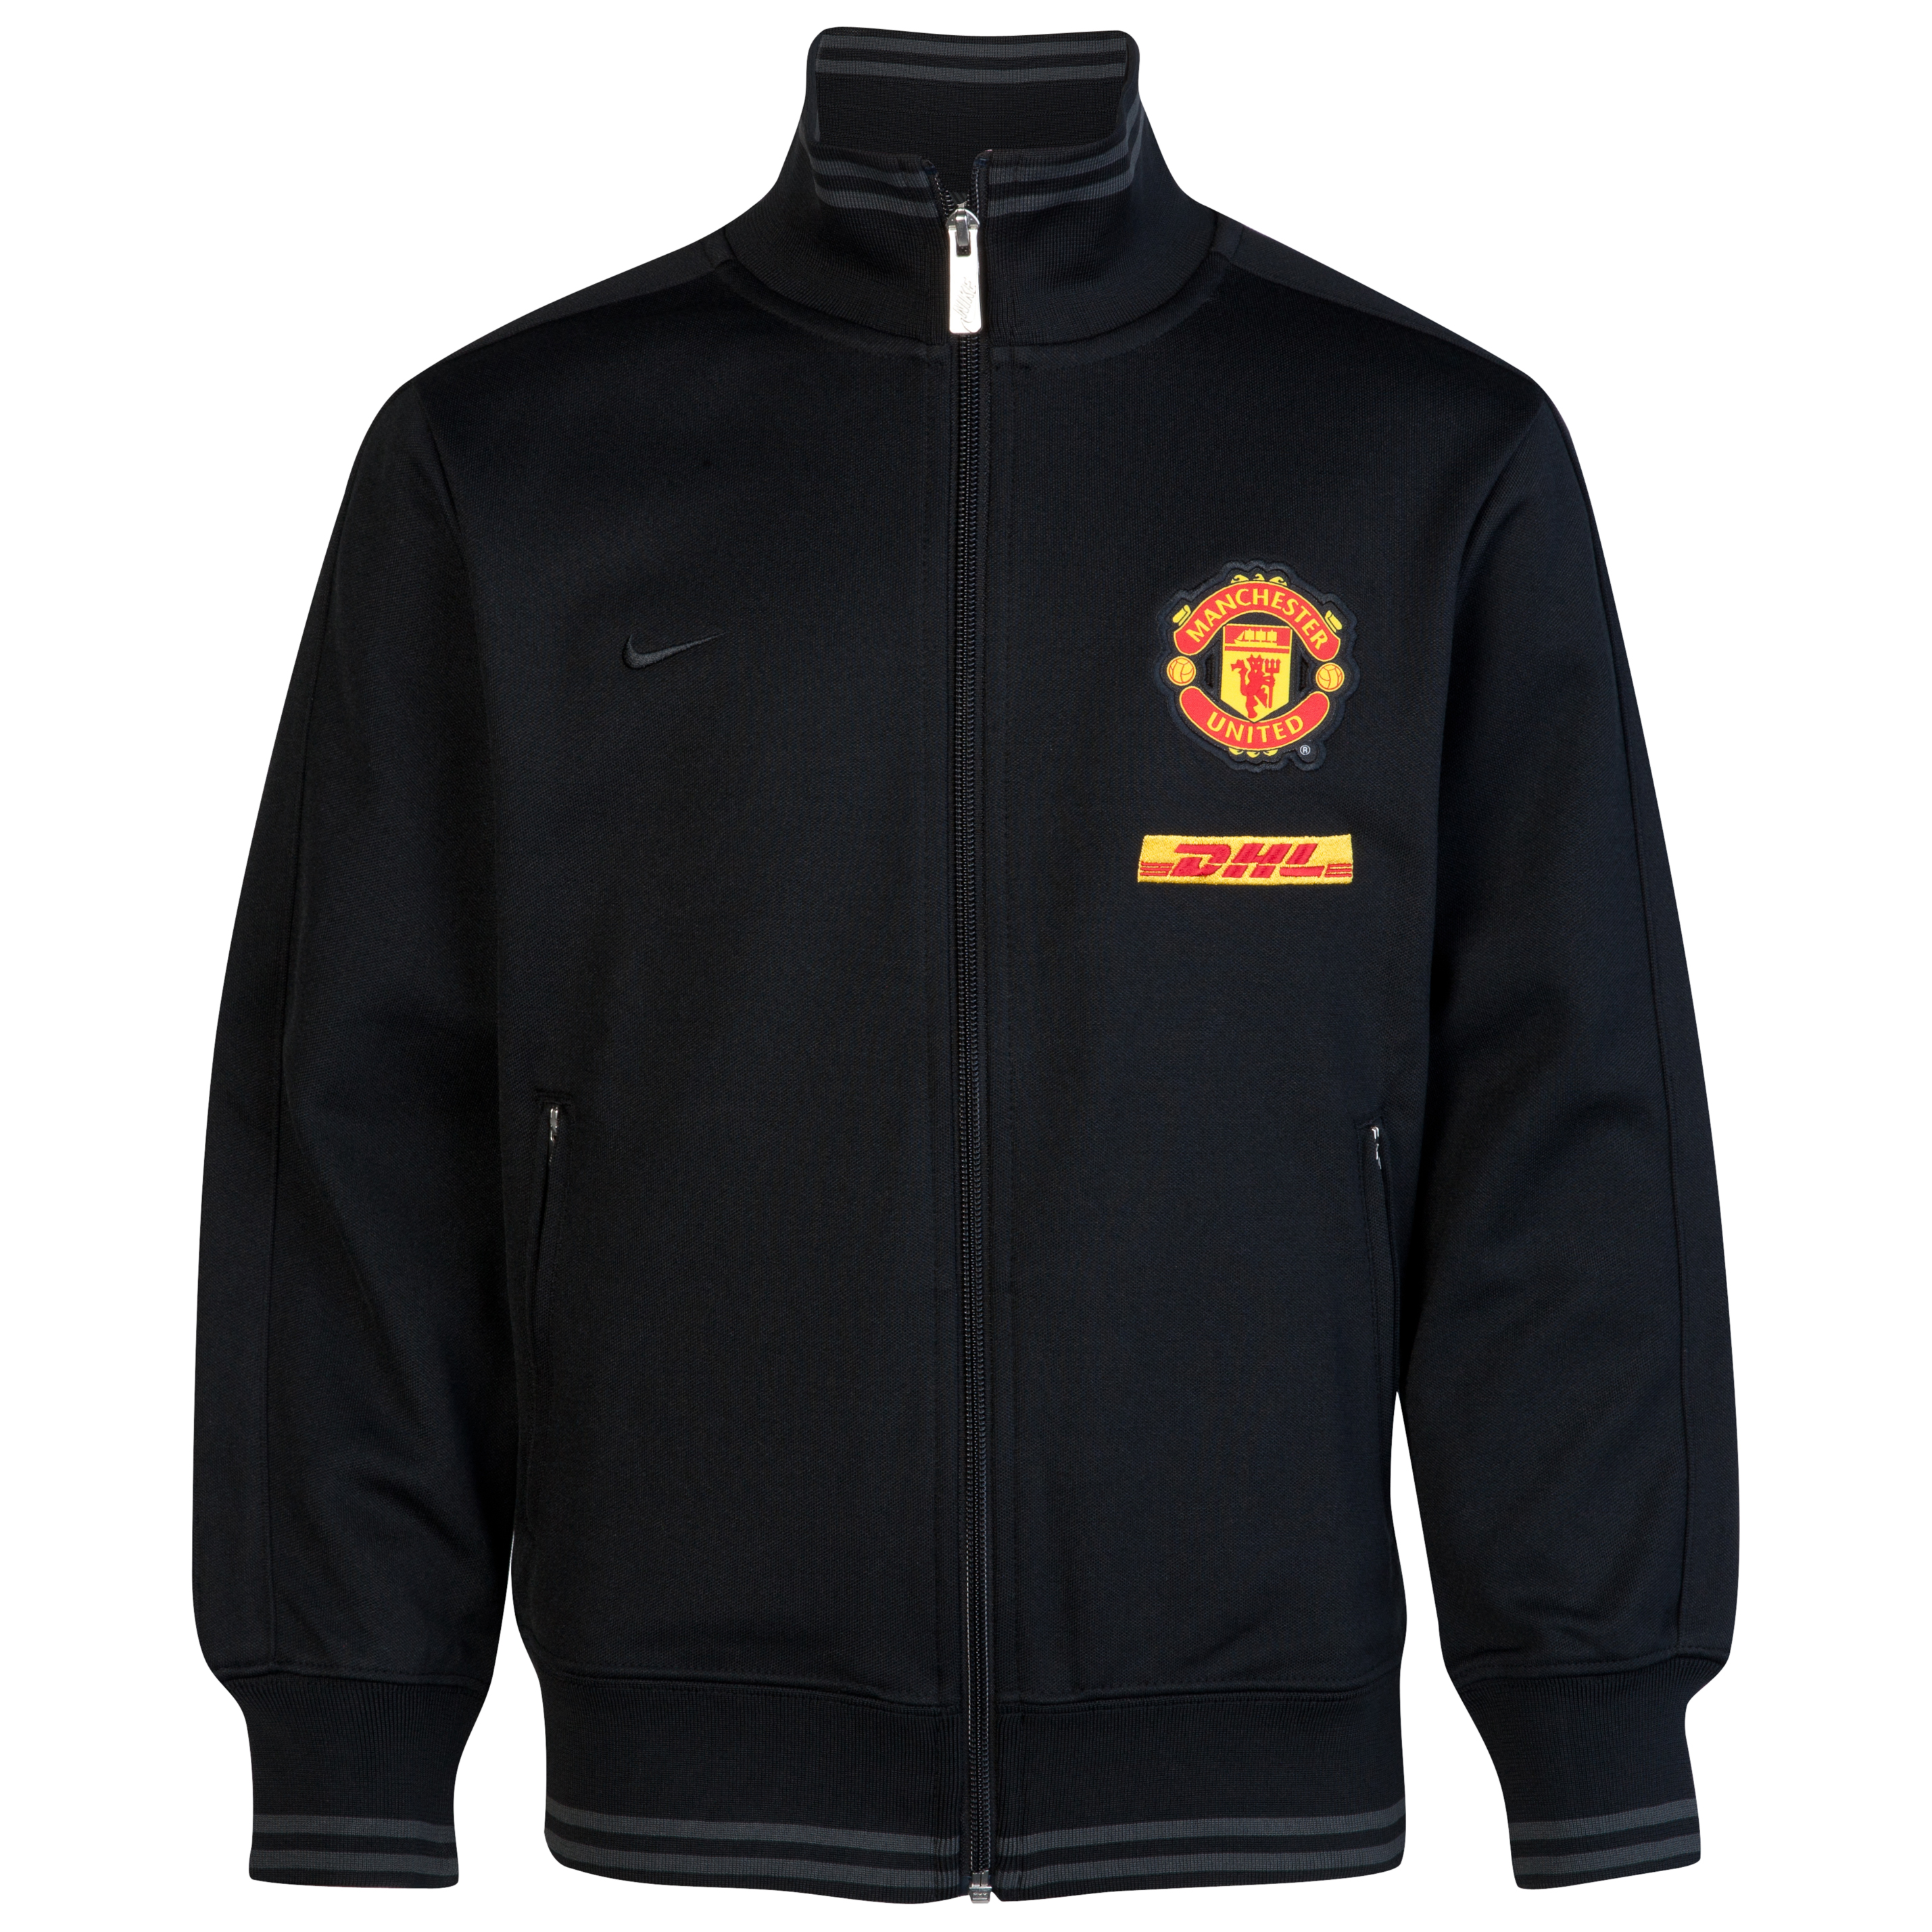 Manchester United Authentic N98 Jacket - DHL - Black/Anthracite/Black - Kids